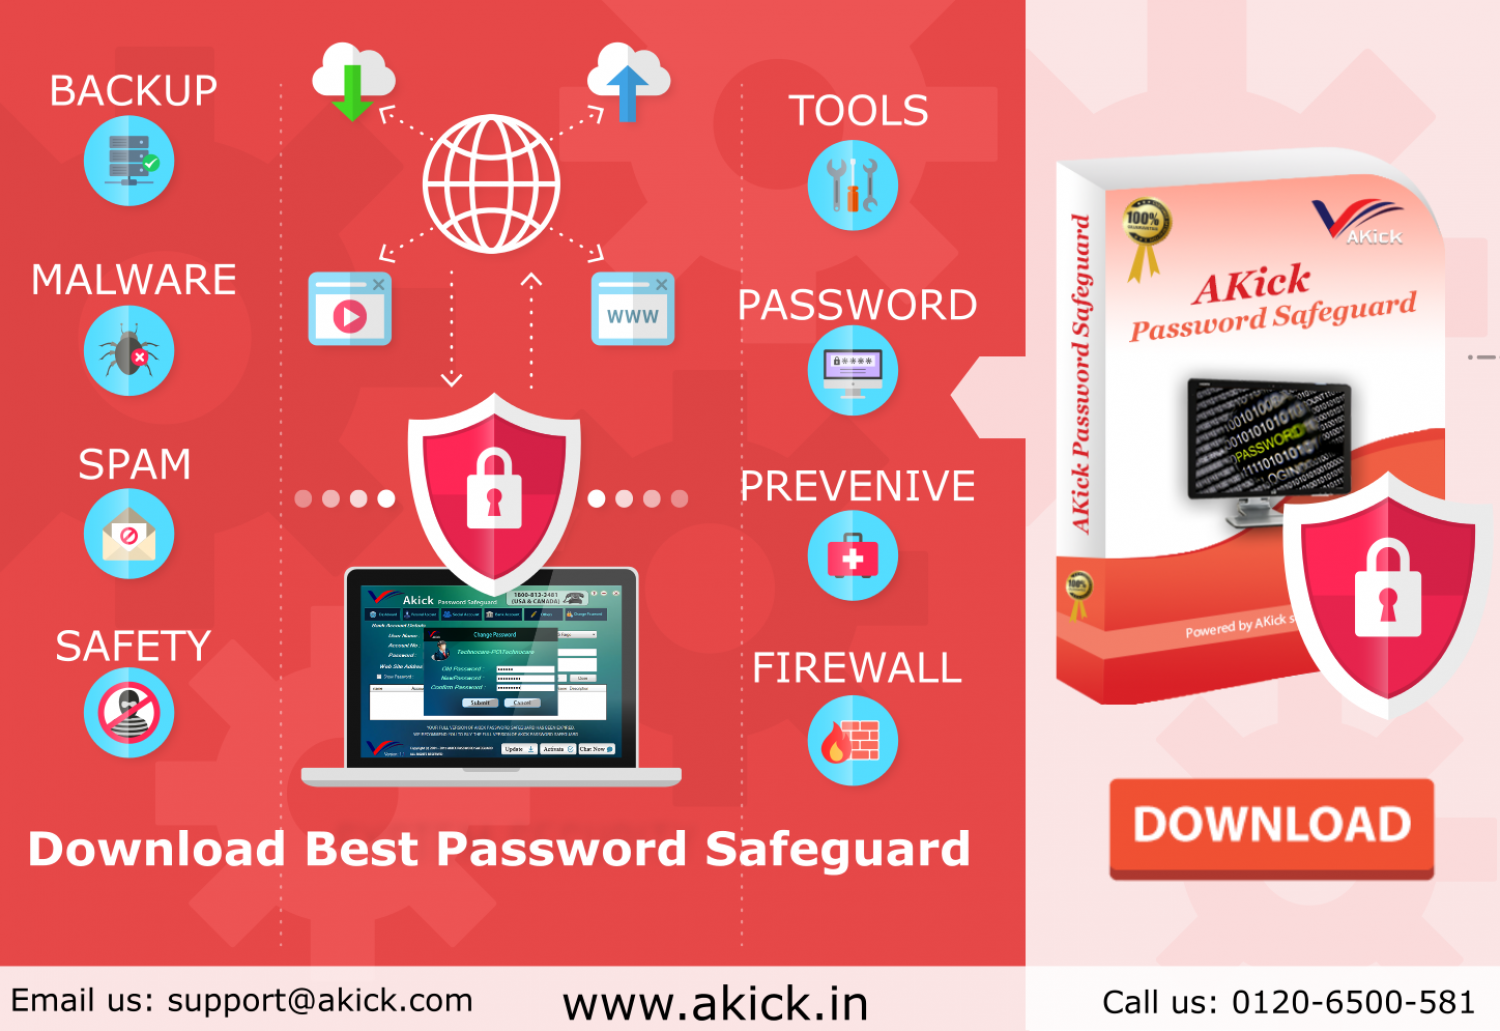 AKick - Free Email Password Recovery Software Infographic